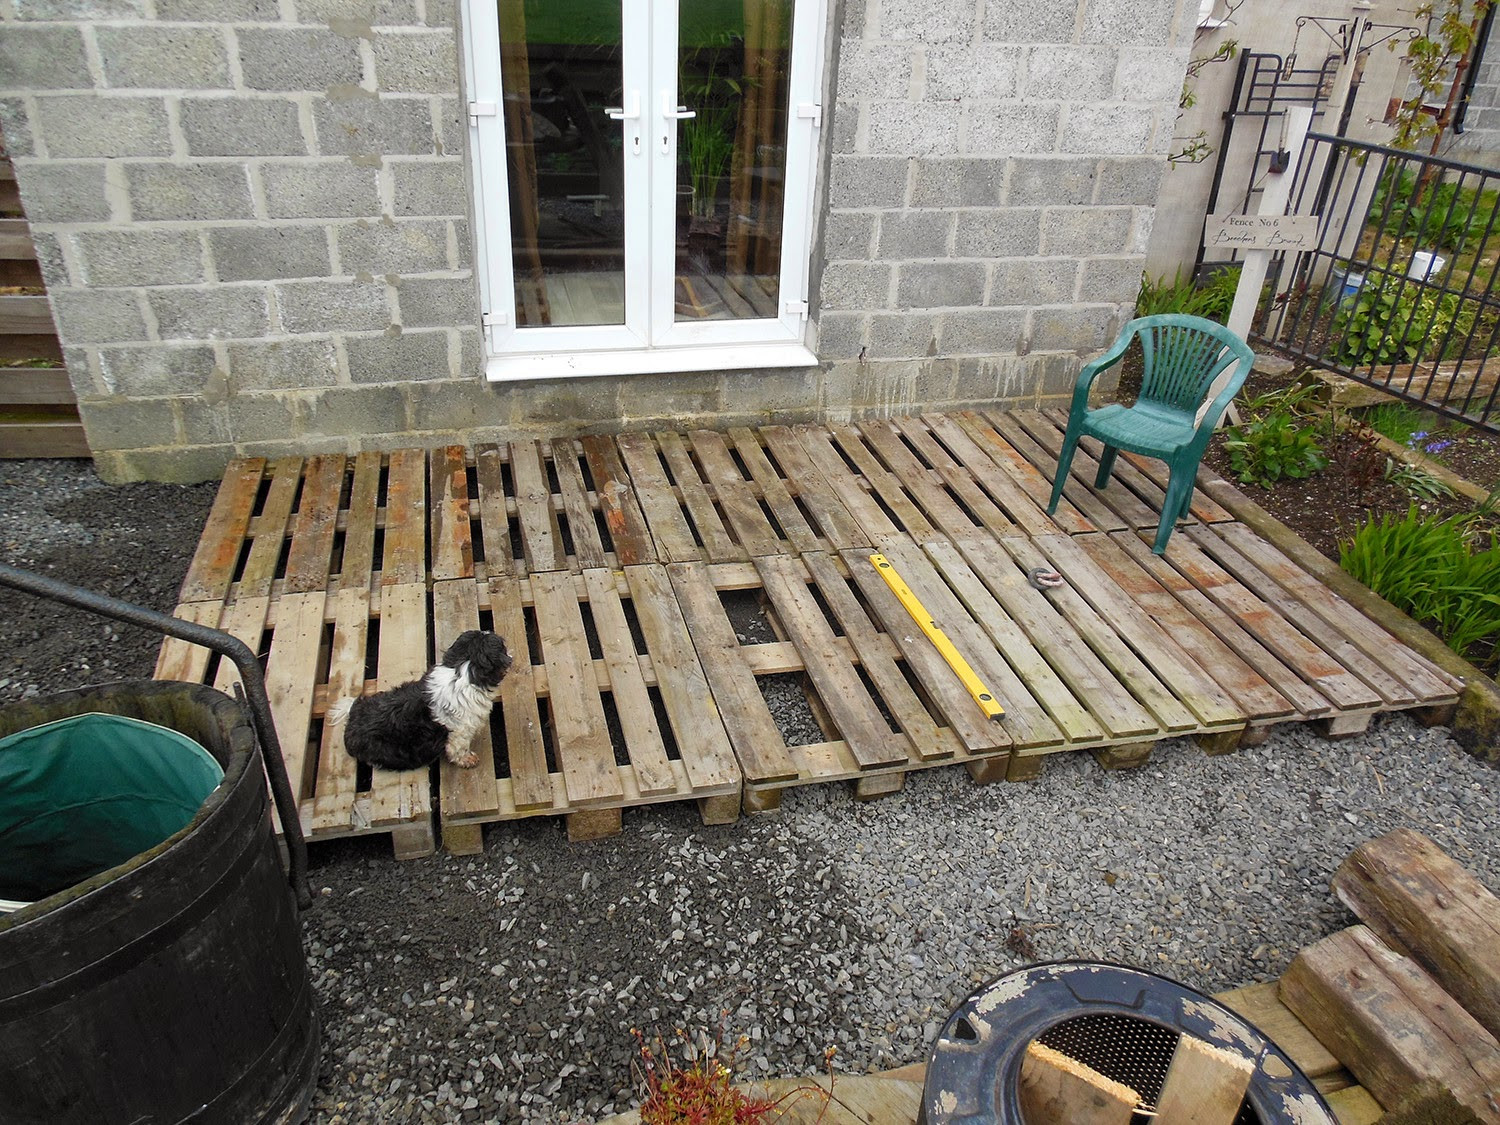 Best ideas about DIY Pallet Deck . Save or Pin The Tenacious Gardener DIY pallet wood decking Now.